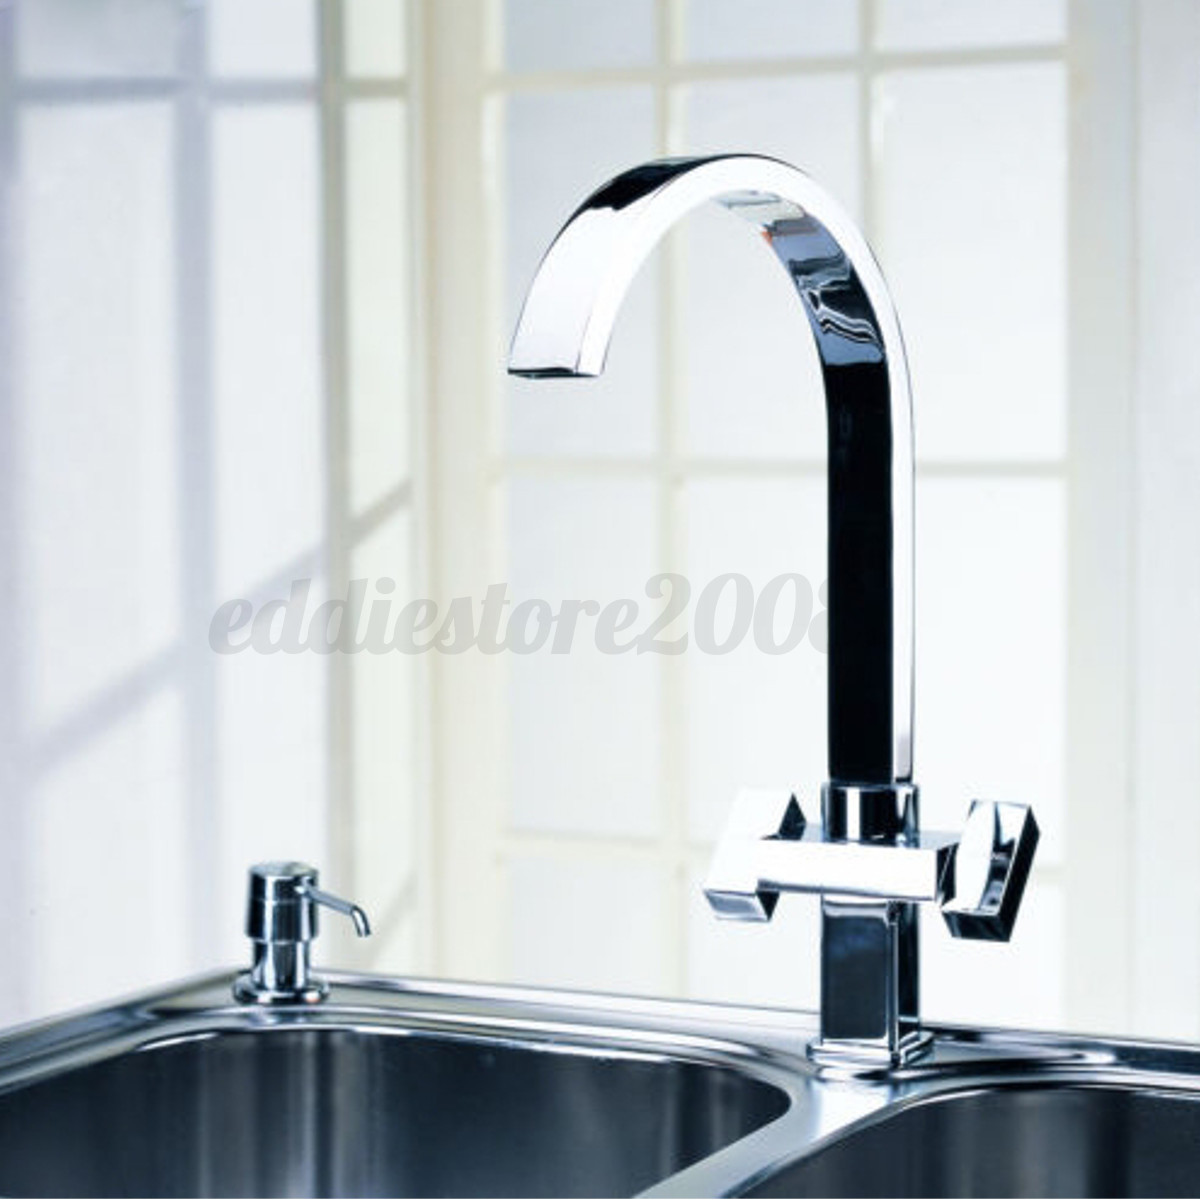 360 176 Swivel Kitchen Faucet Spout Pull Down Sprayer Bathroom Sink Mixer Tap Ebay